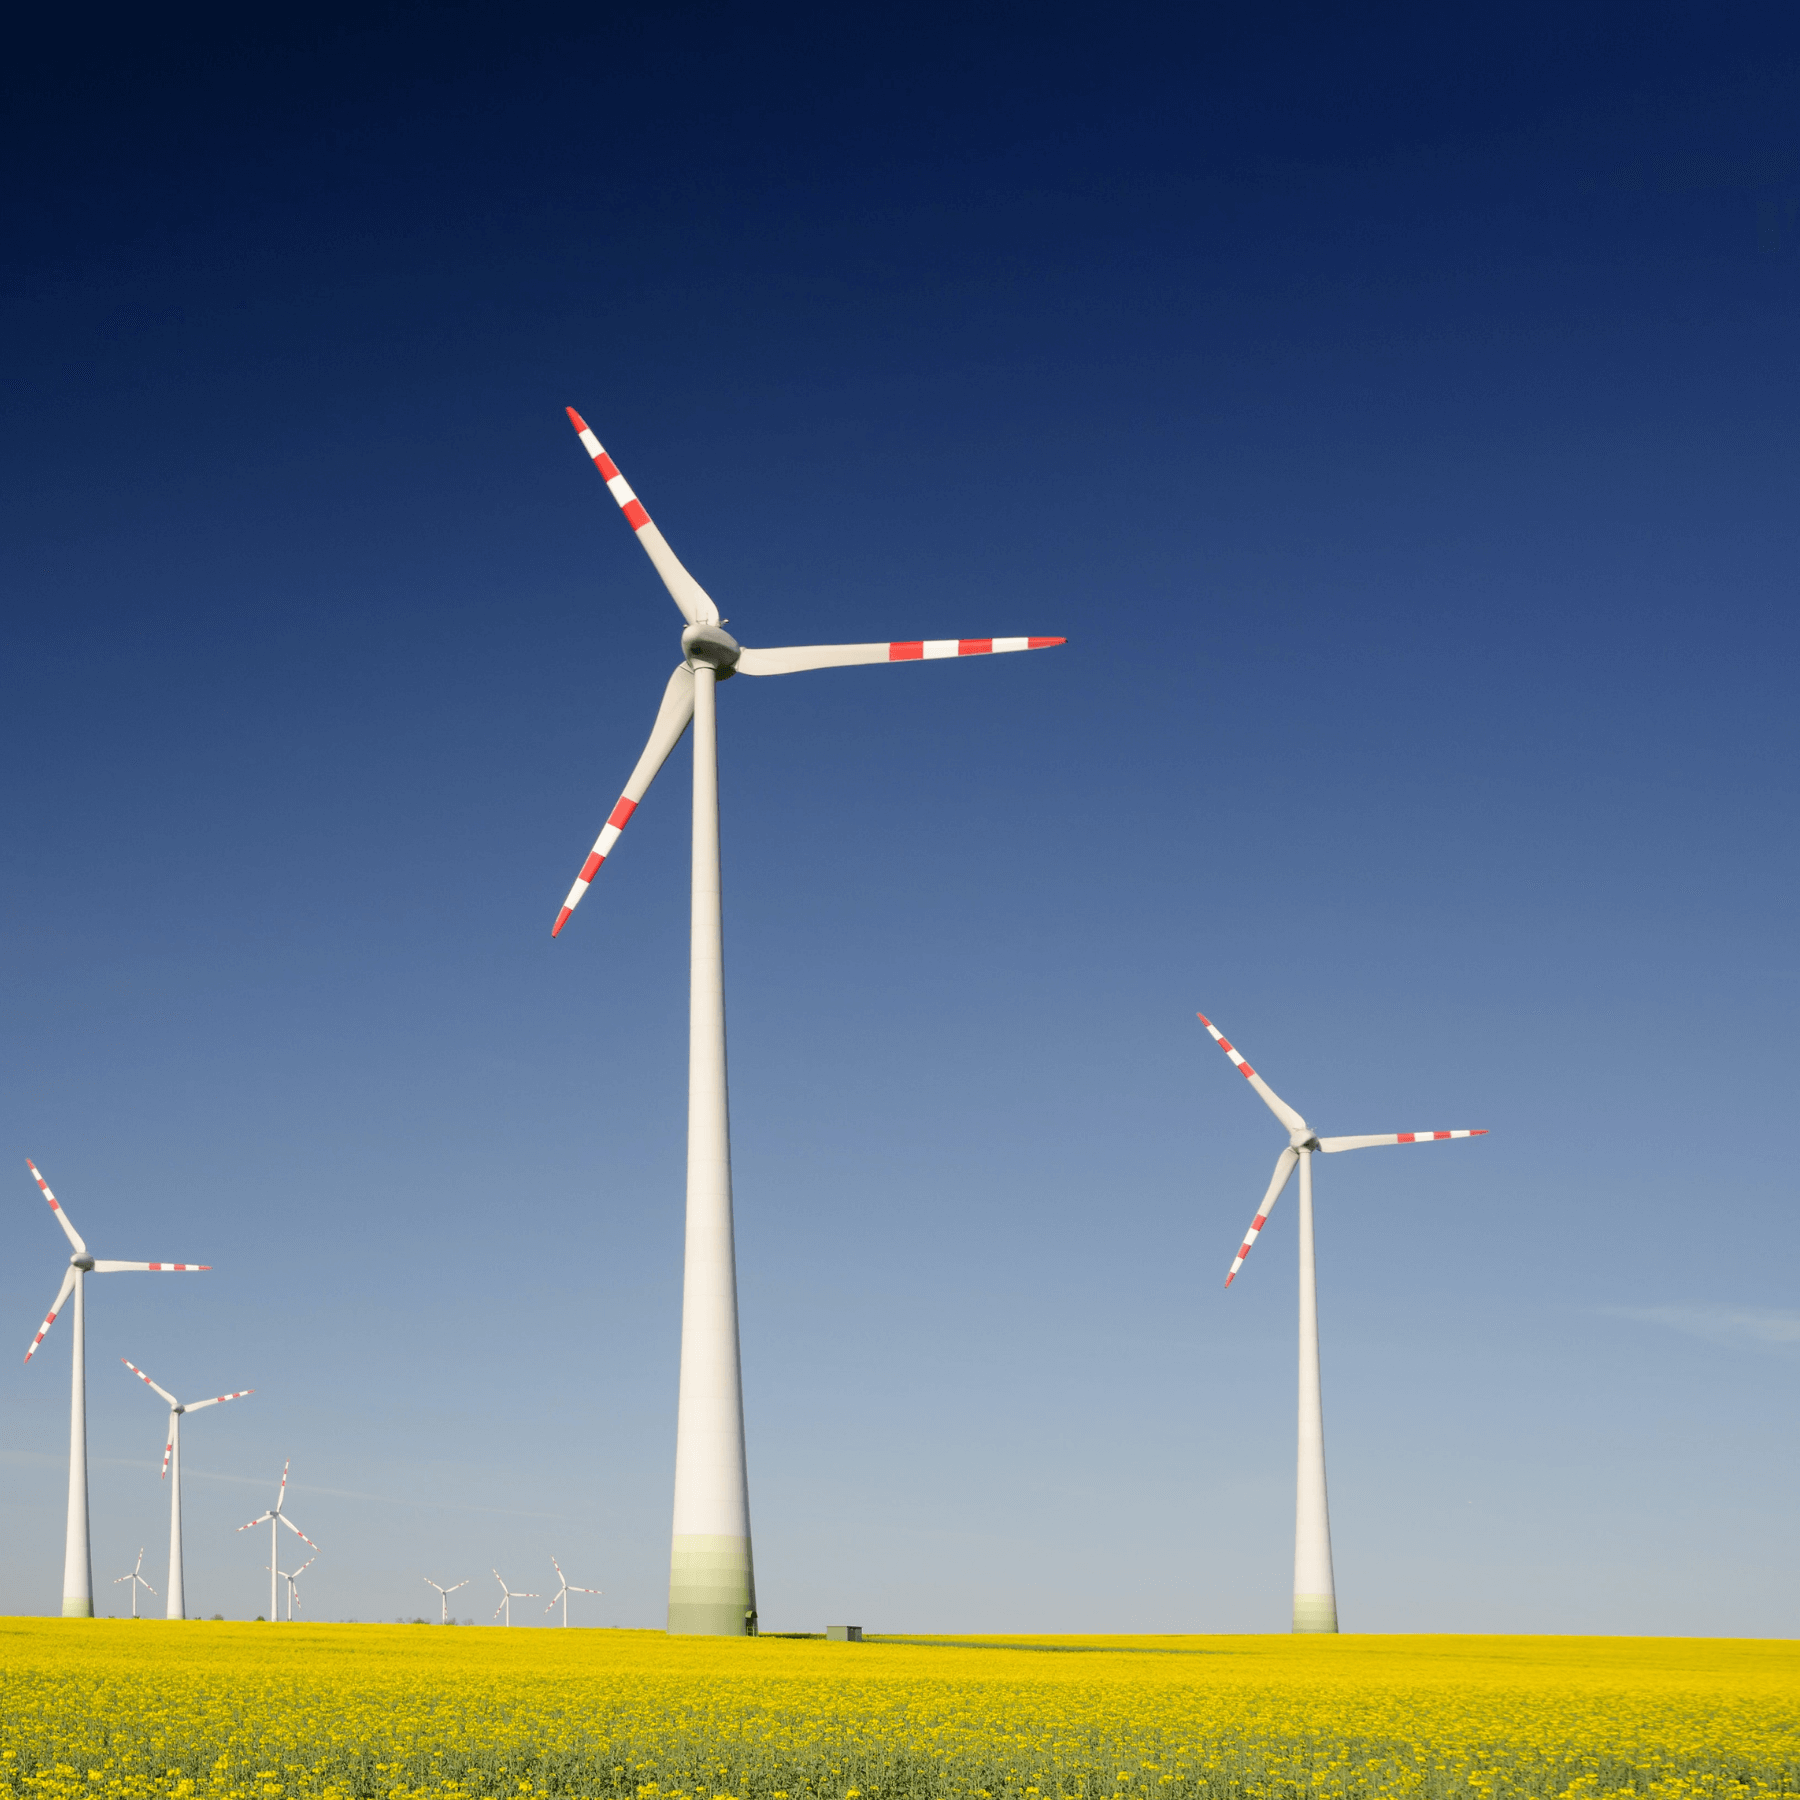 Four wind turbines in a green field with blue skies